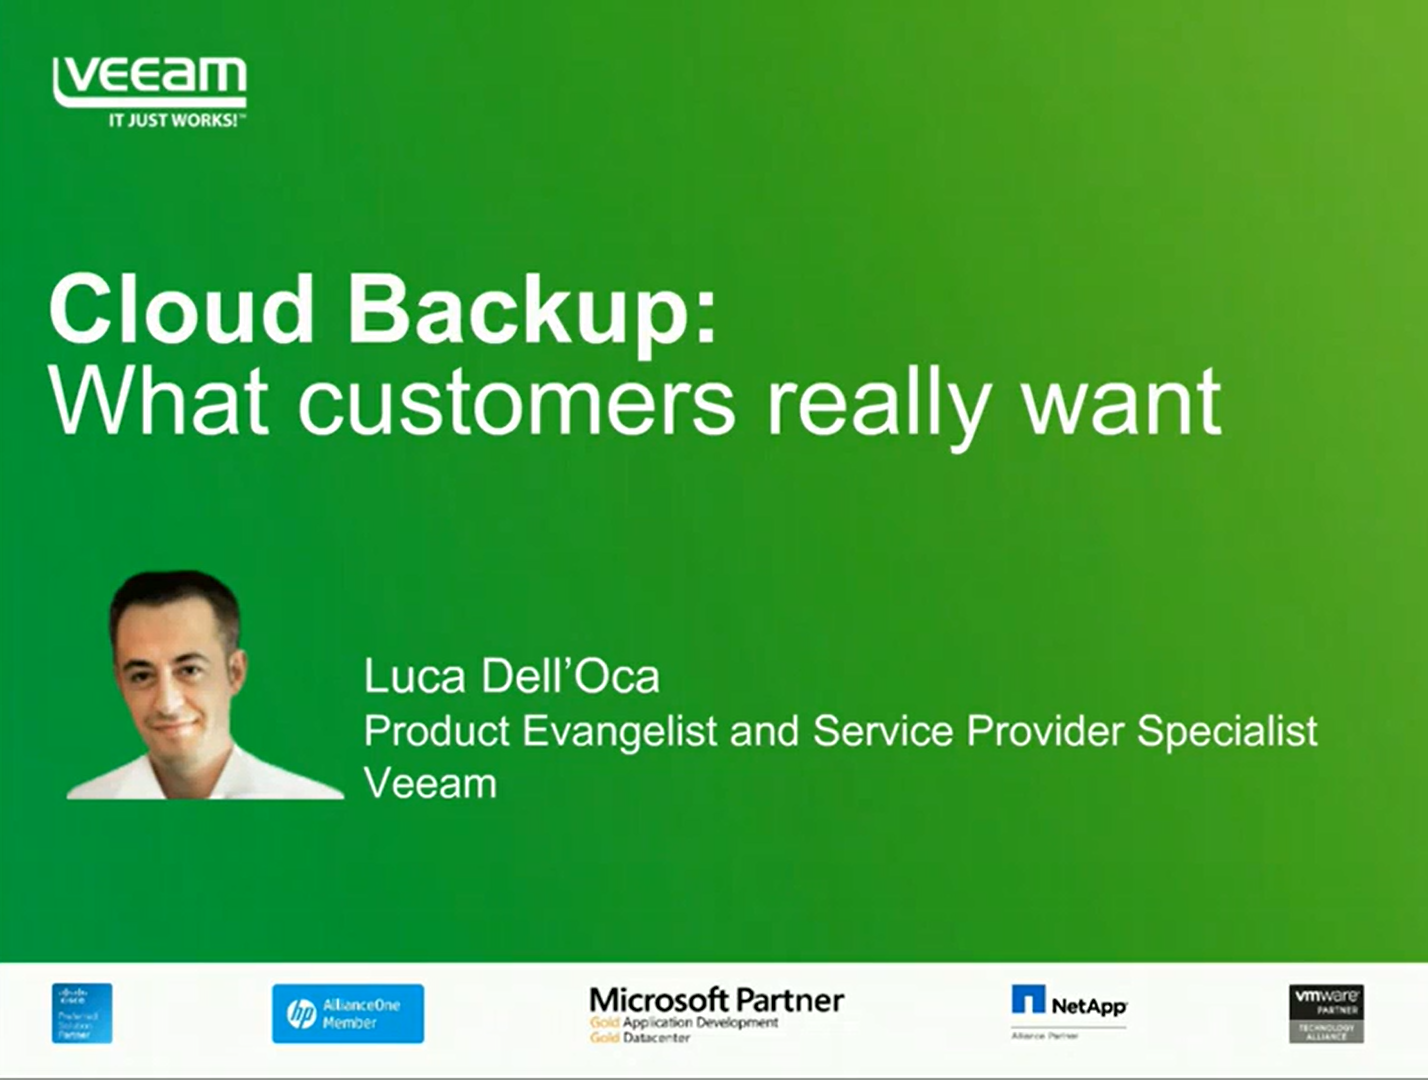 Cloud Backup: What Customers Really Want